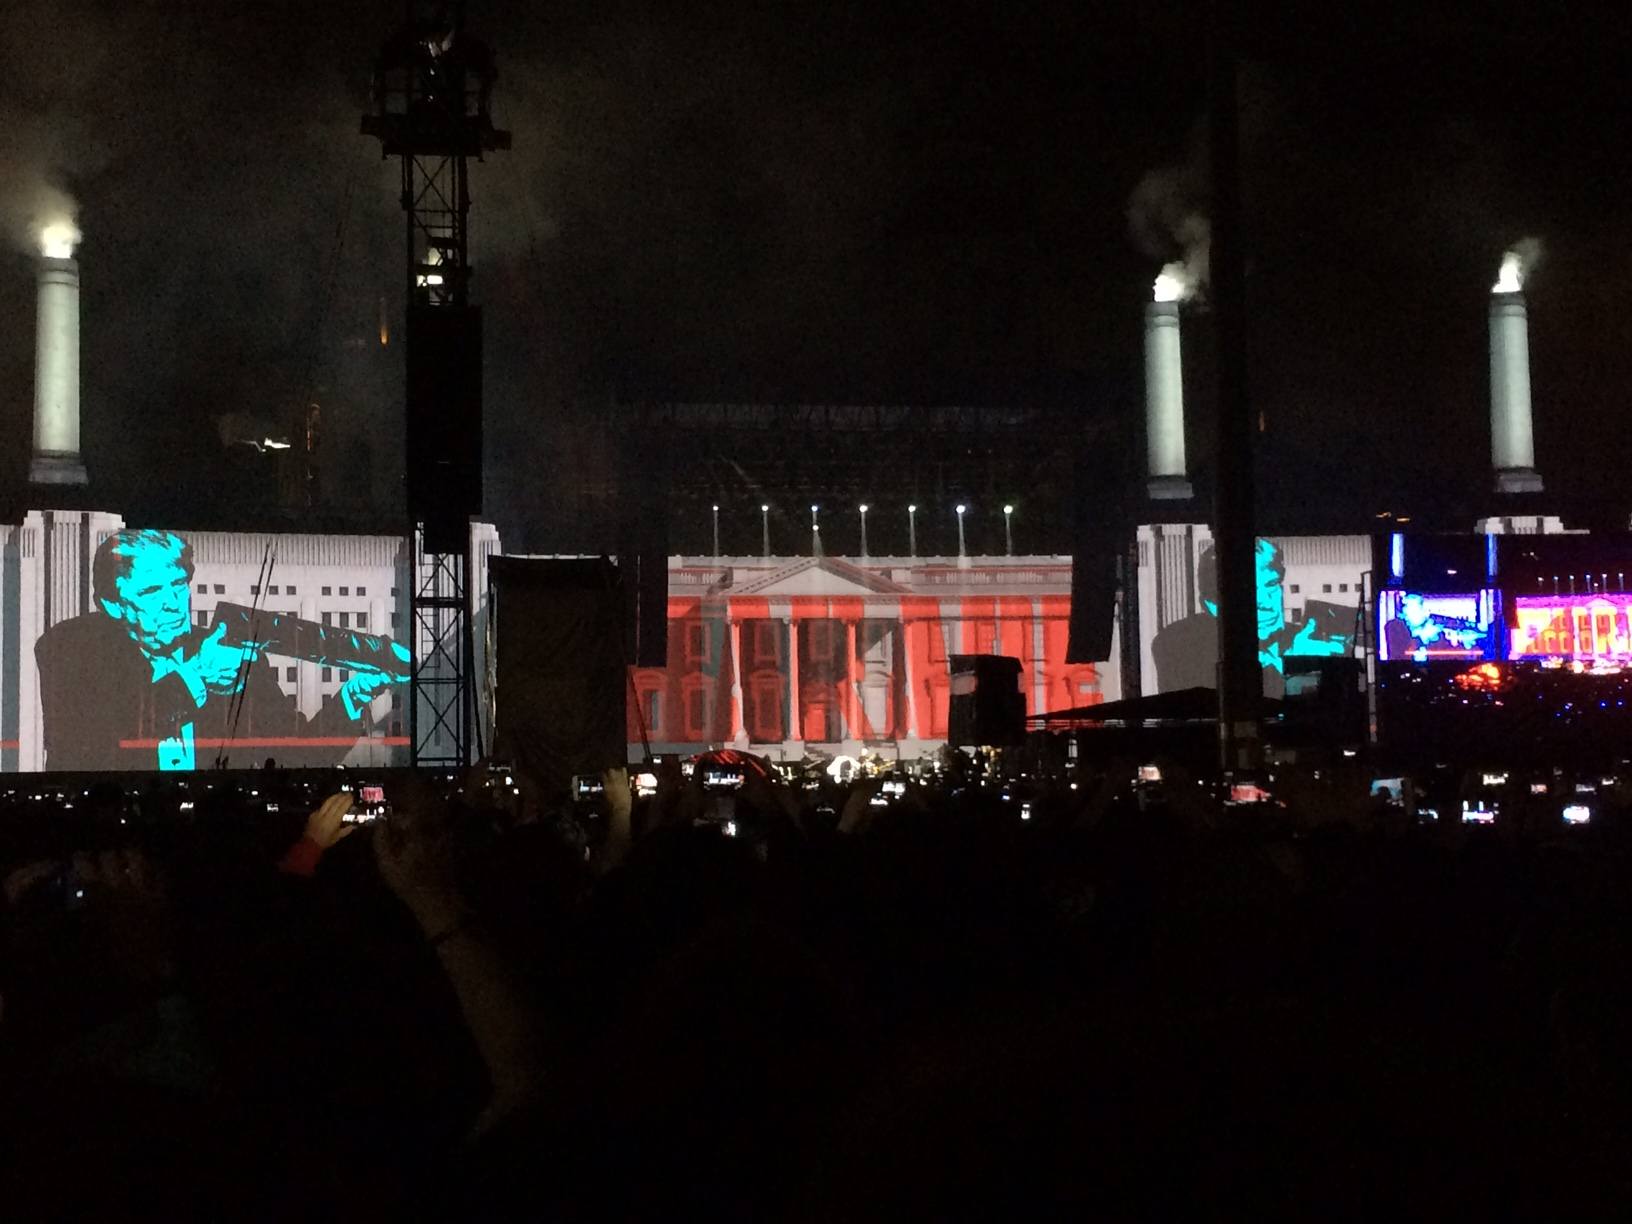 Lo visual, el show alterno de Roger Waters